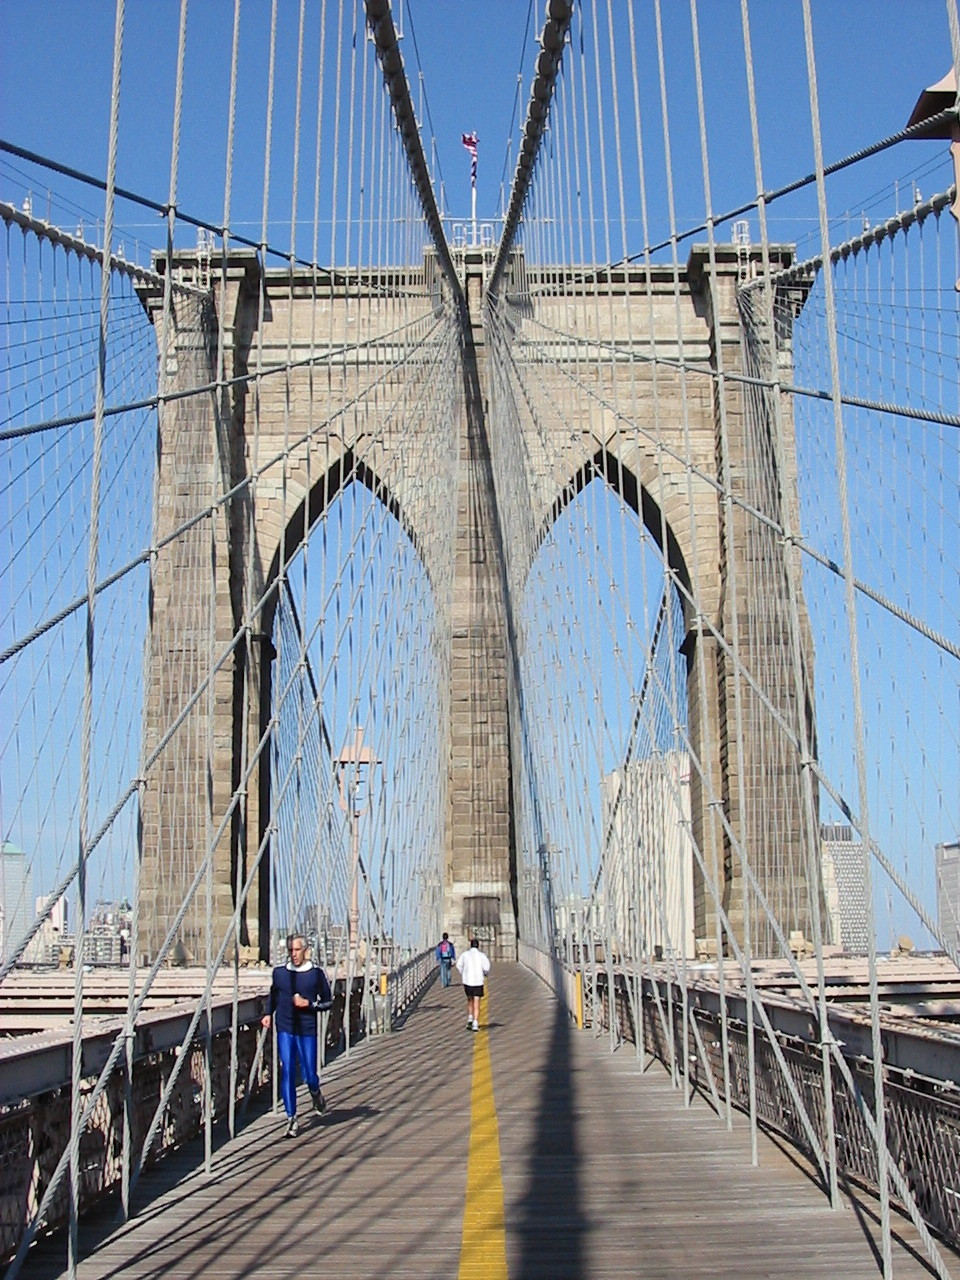 File:Brooklyn Bridge In New York City, 2002.jpg